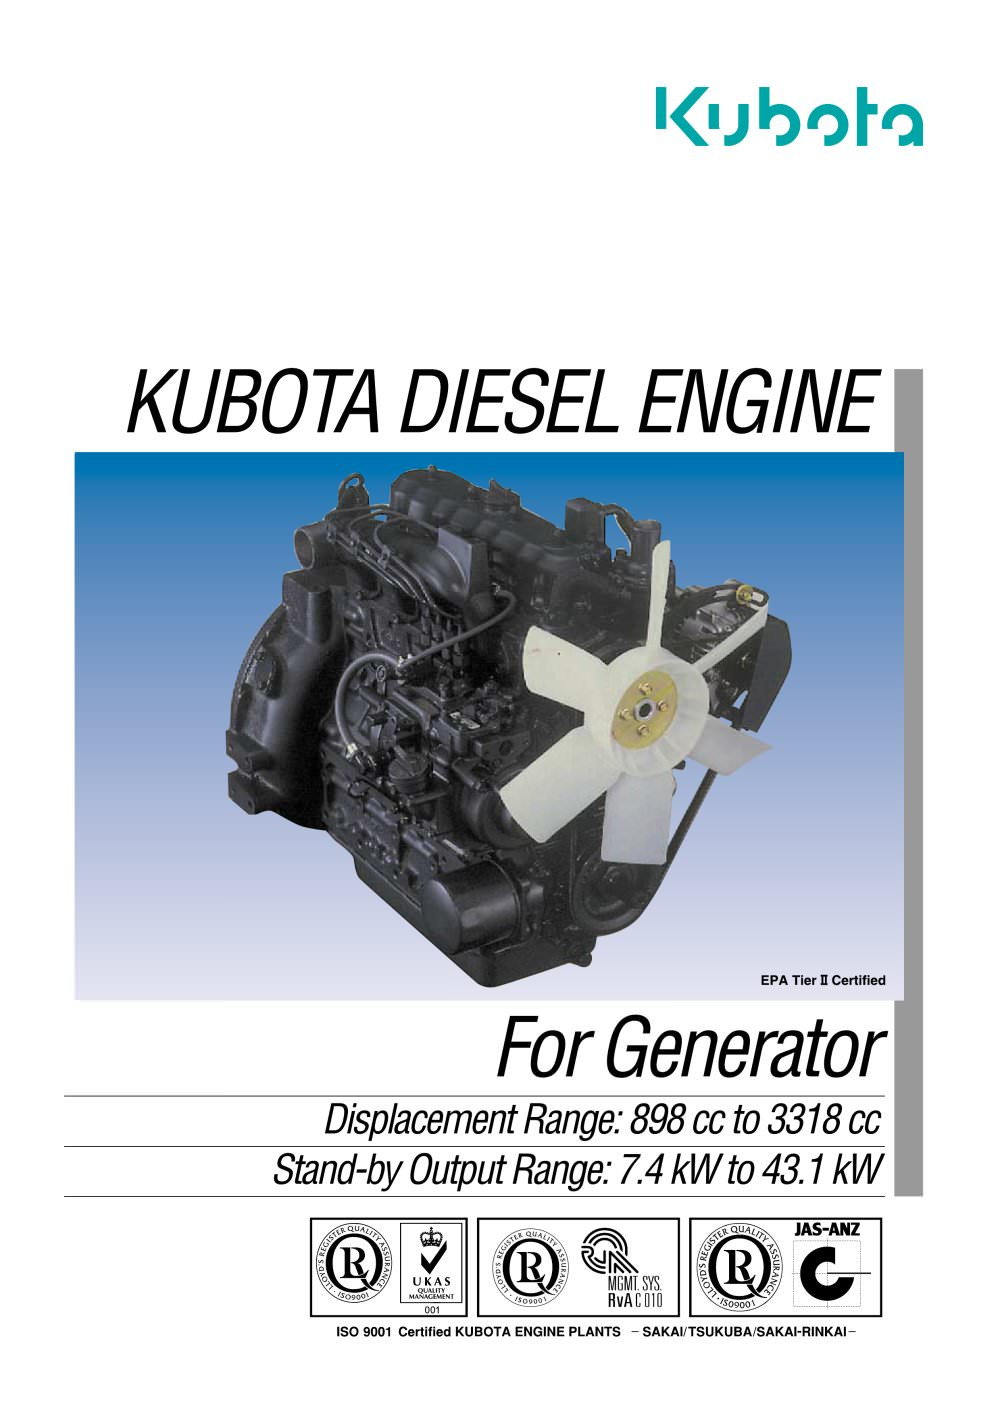 KUBOTA Diesel Engine - 1 / 8 Pages